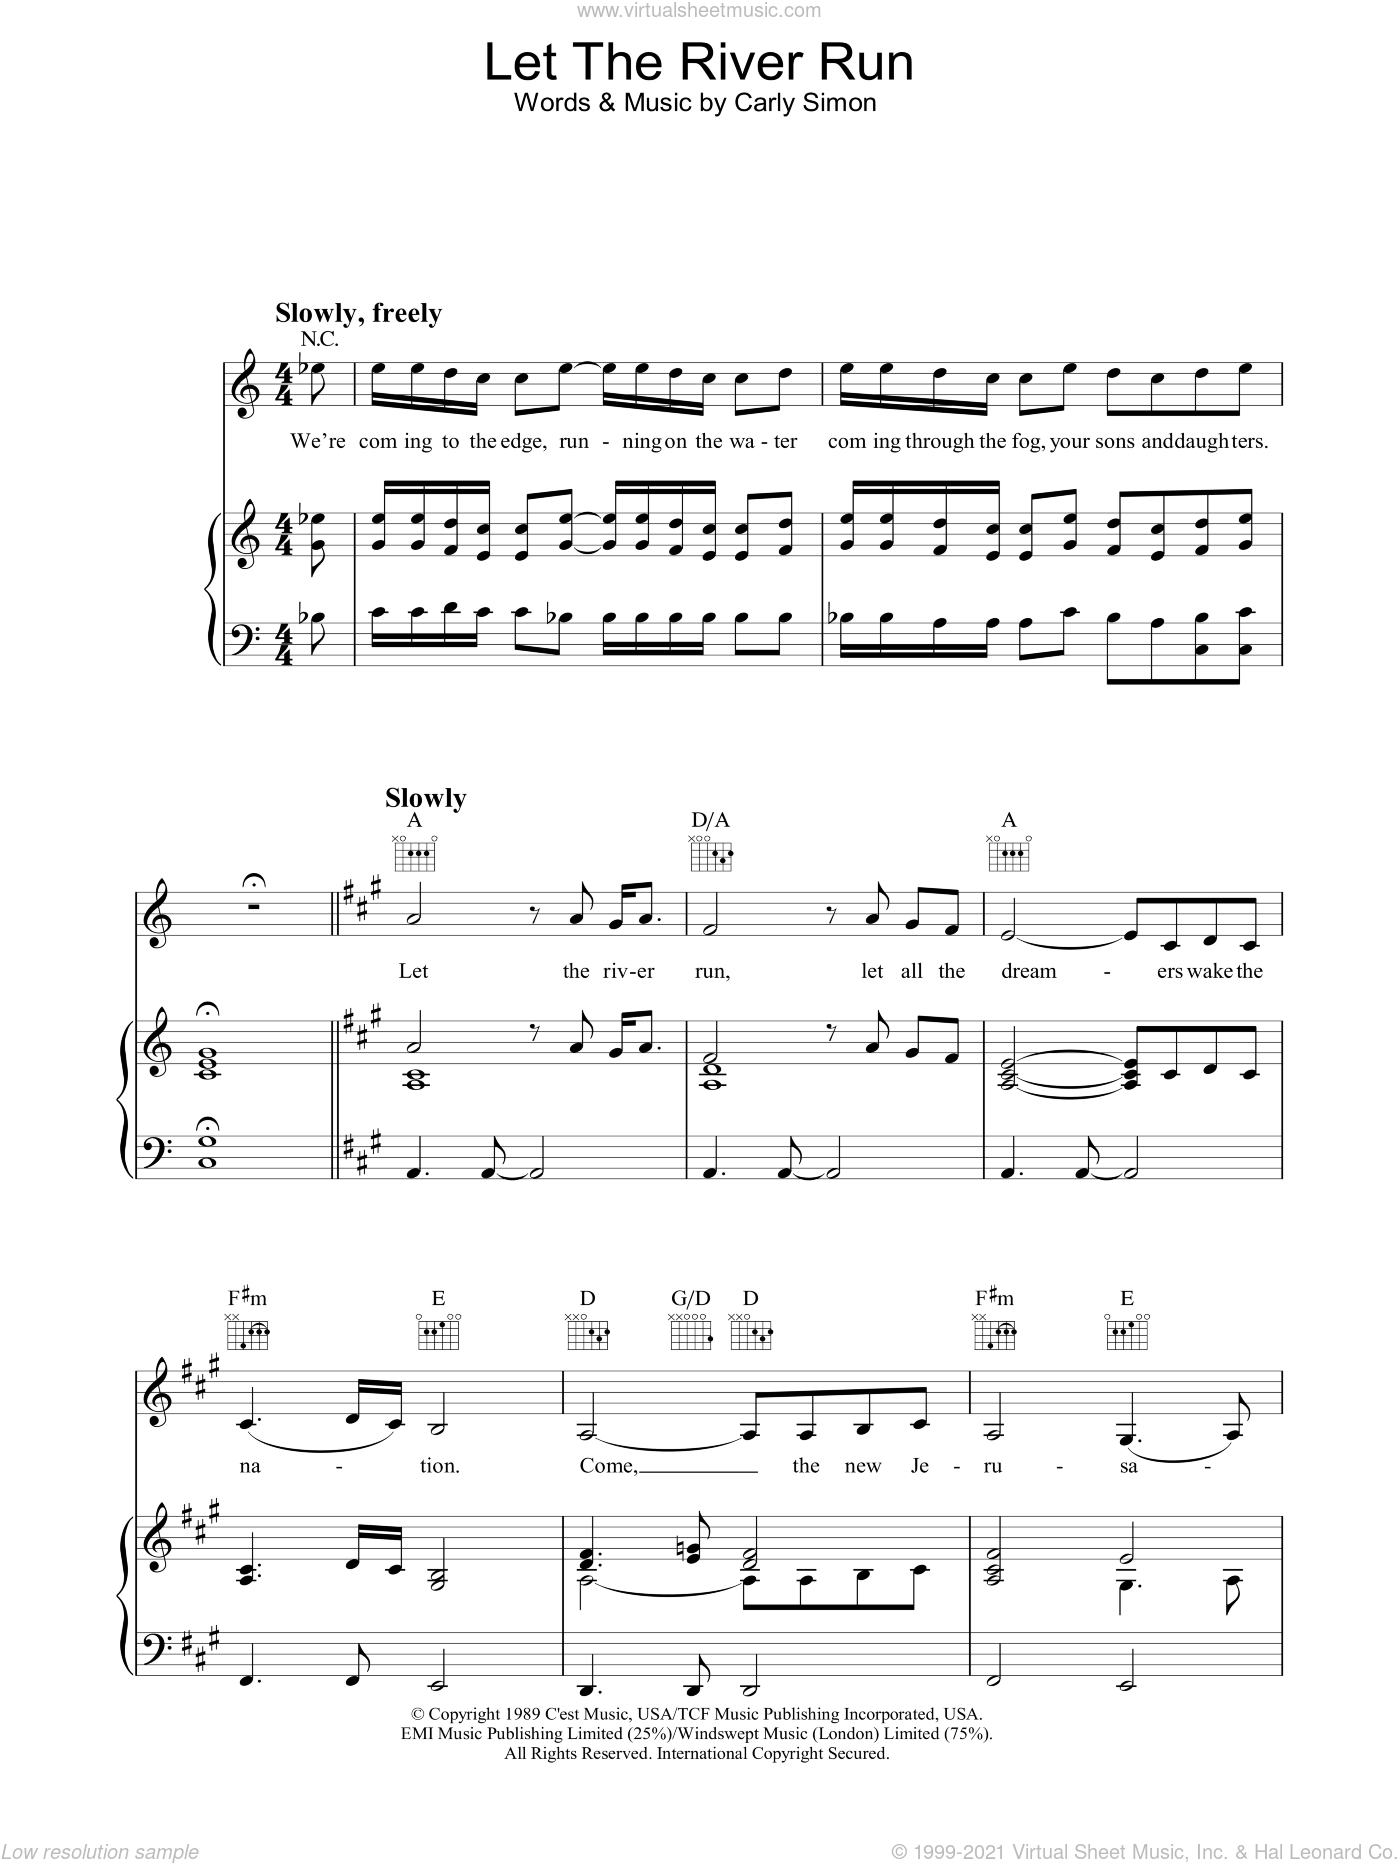 Let The River Run sheet music for voice, piano or guitar by Carly Simon, intermediate skill level